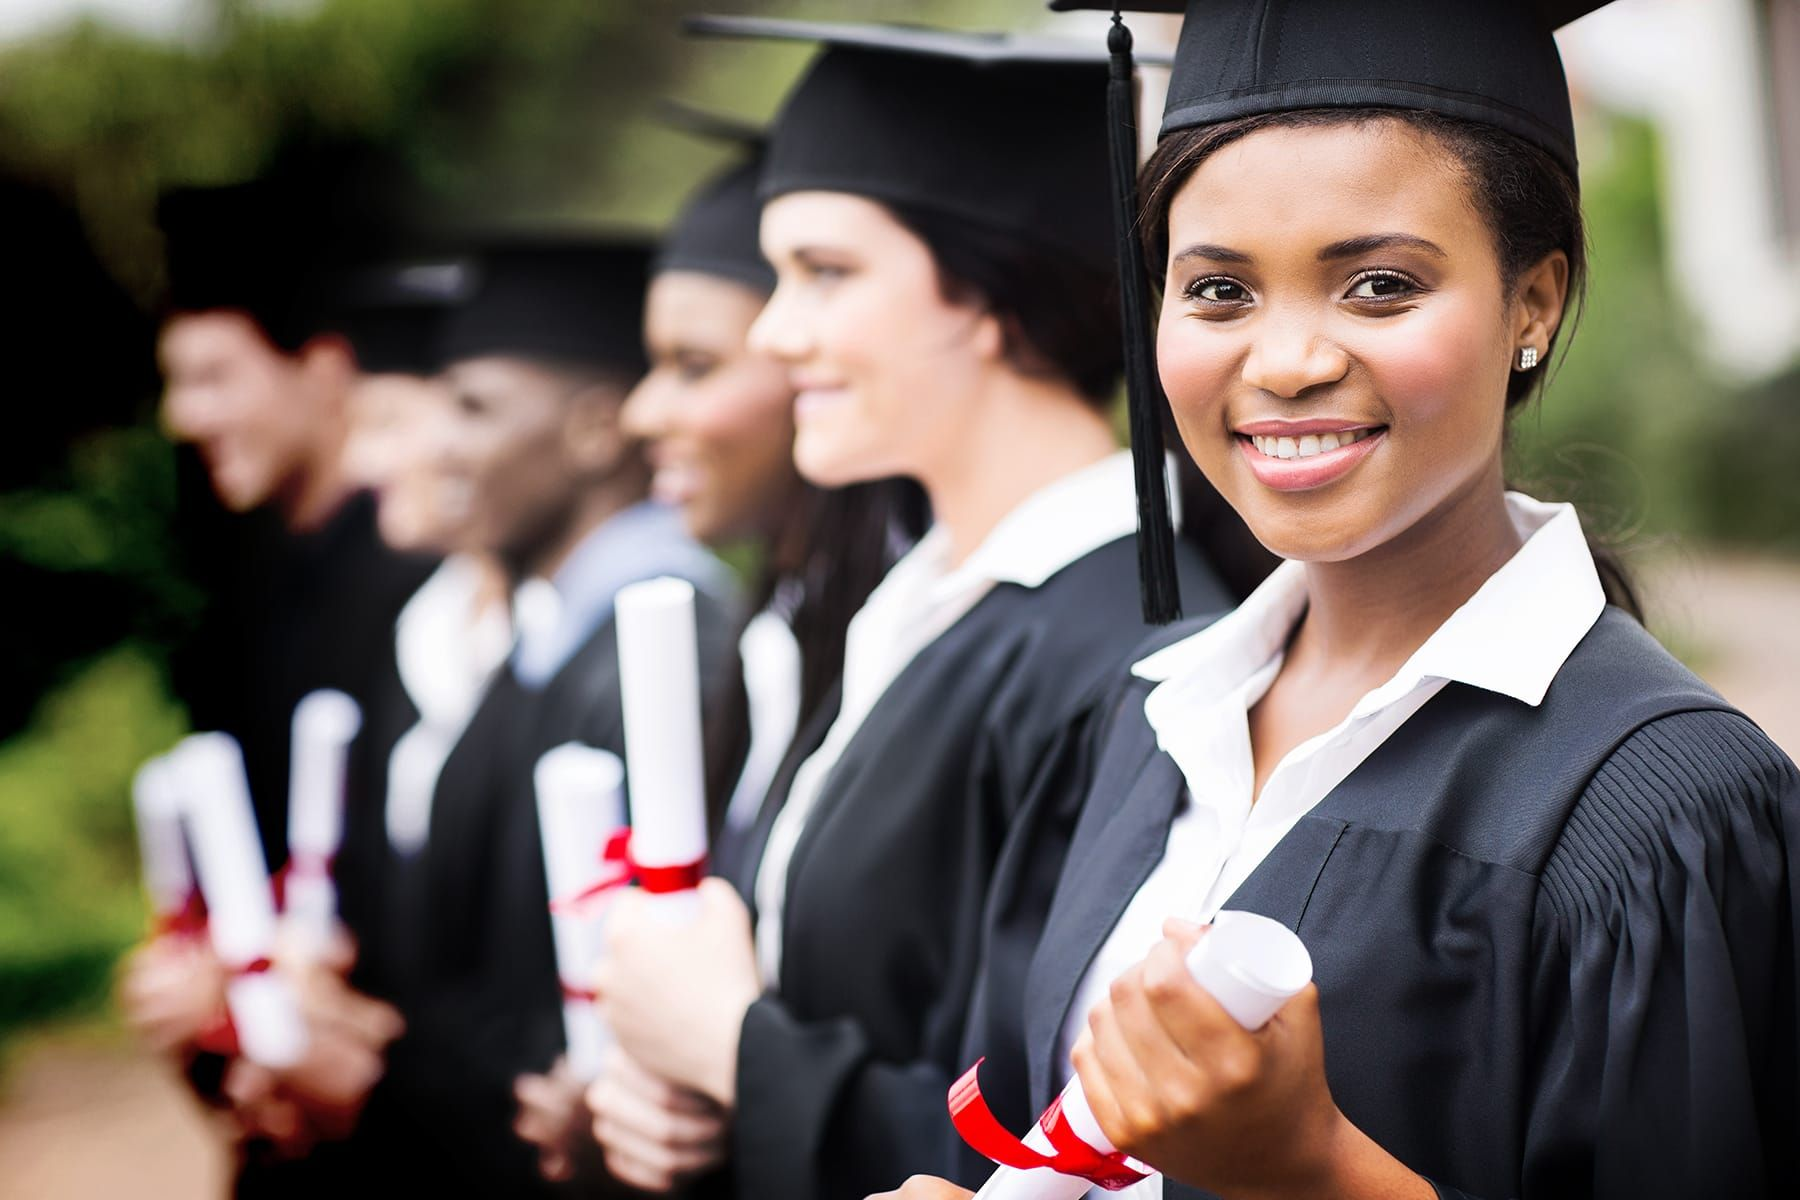 2,000 scholarship in honor of Underserved Populations. To